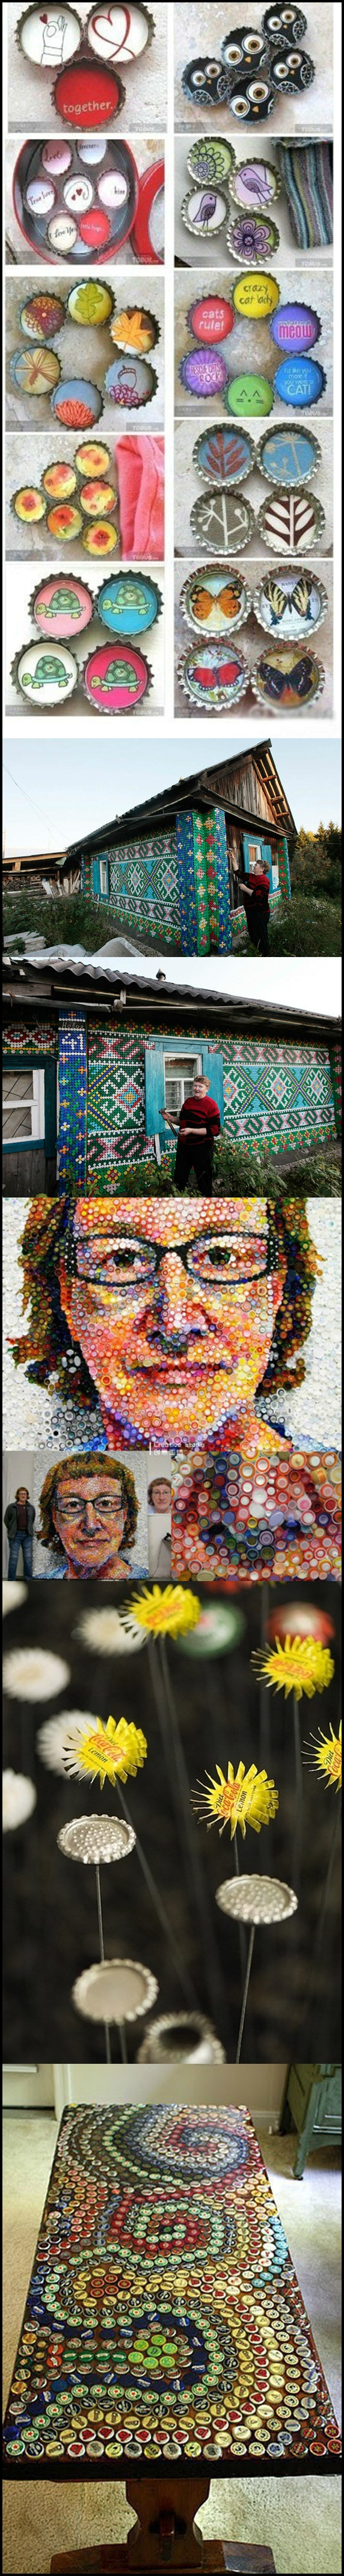 Bottle cap art m Wonderful bottle cap art